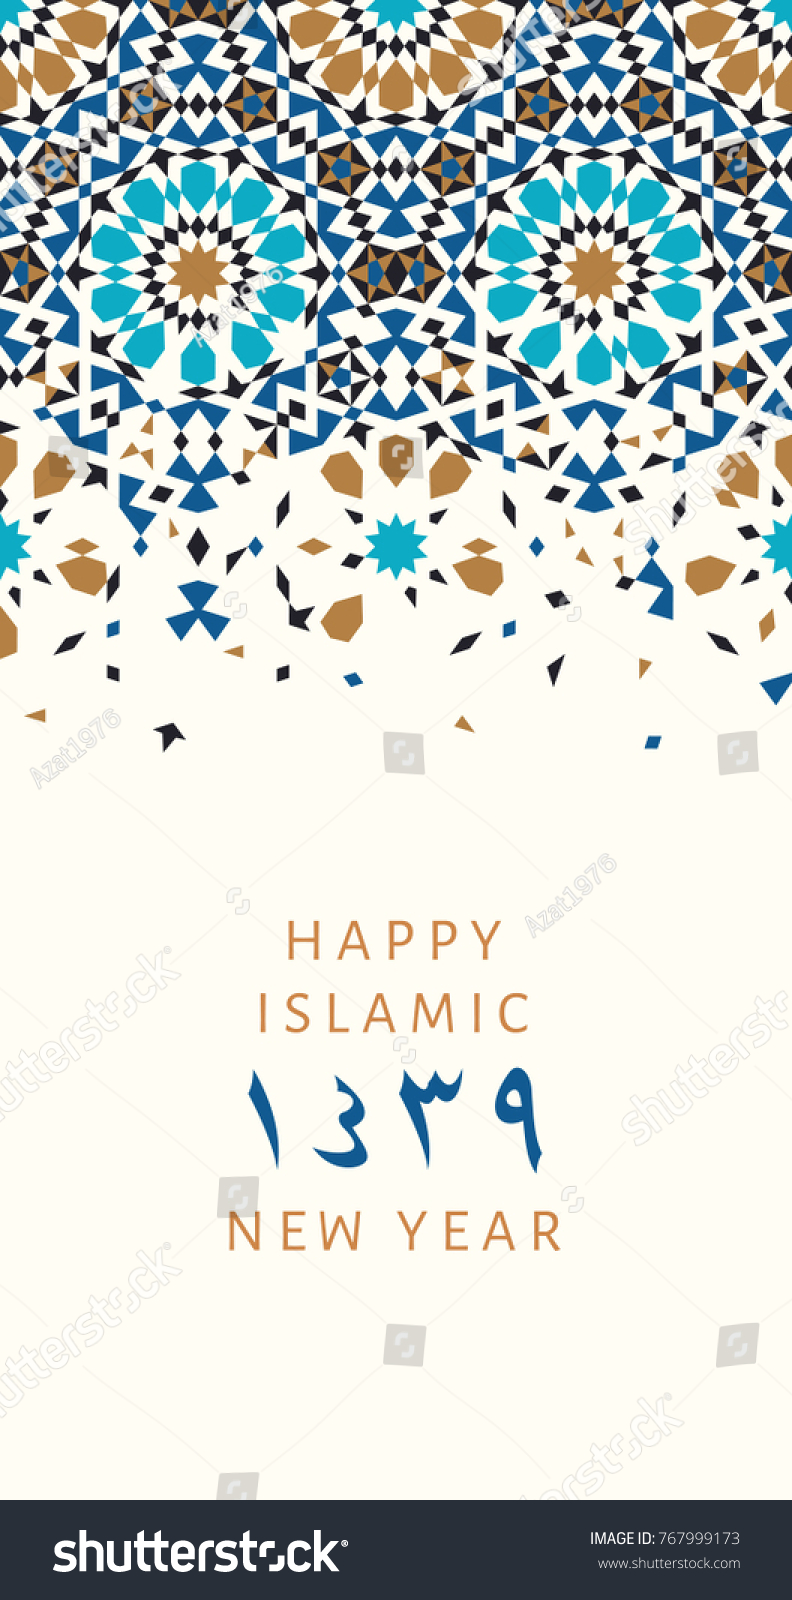 1439 Hijri Islamic New Year Happy Muharram Muslim Community